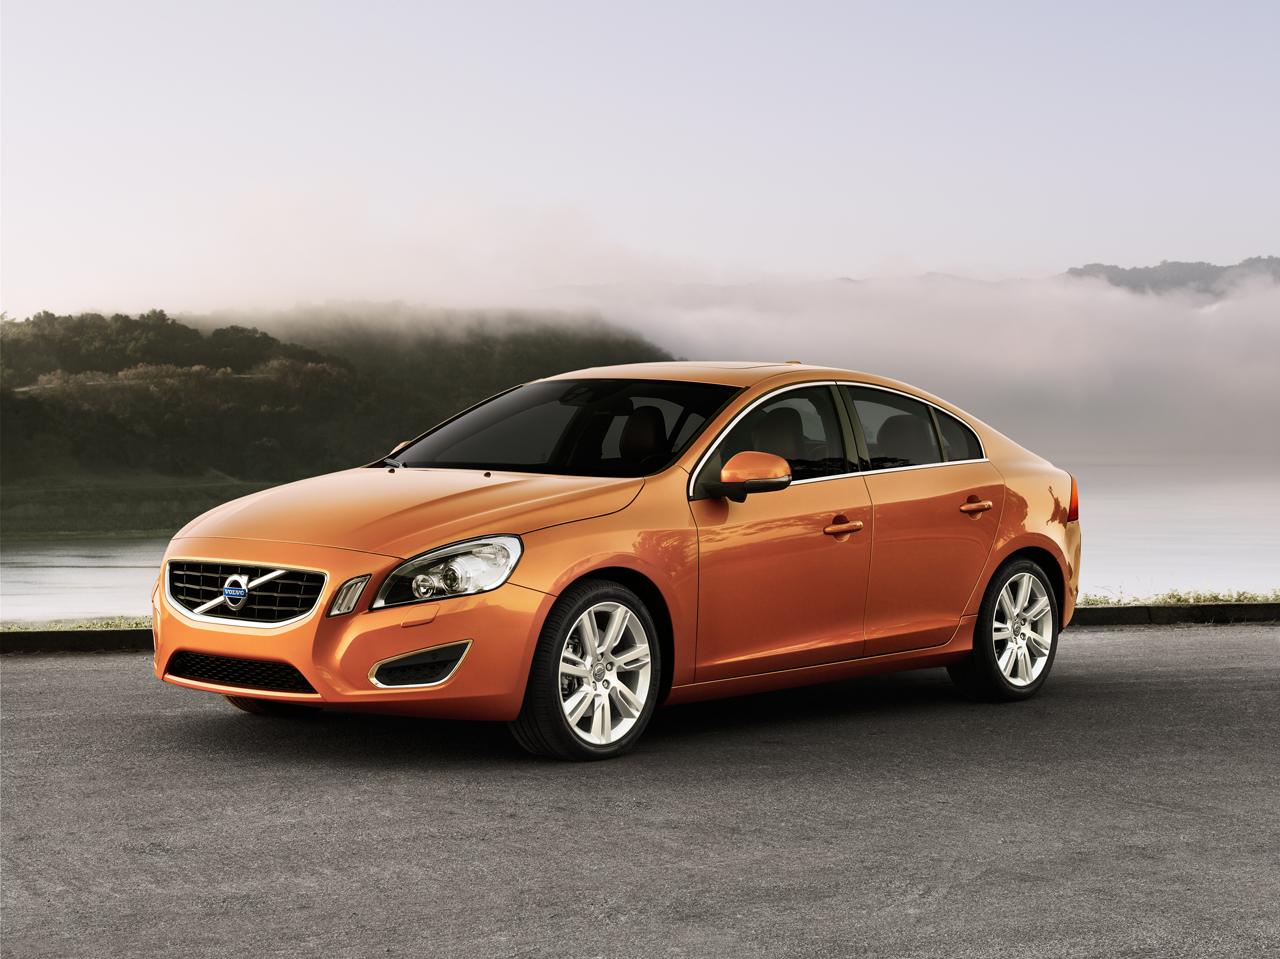 volvo S60 has released  Desktop Backgrounds